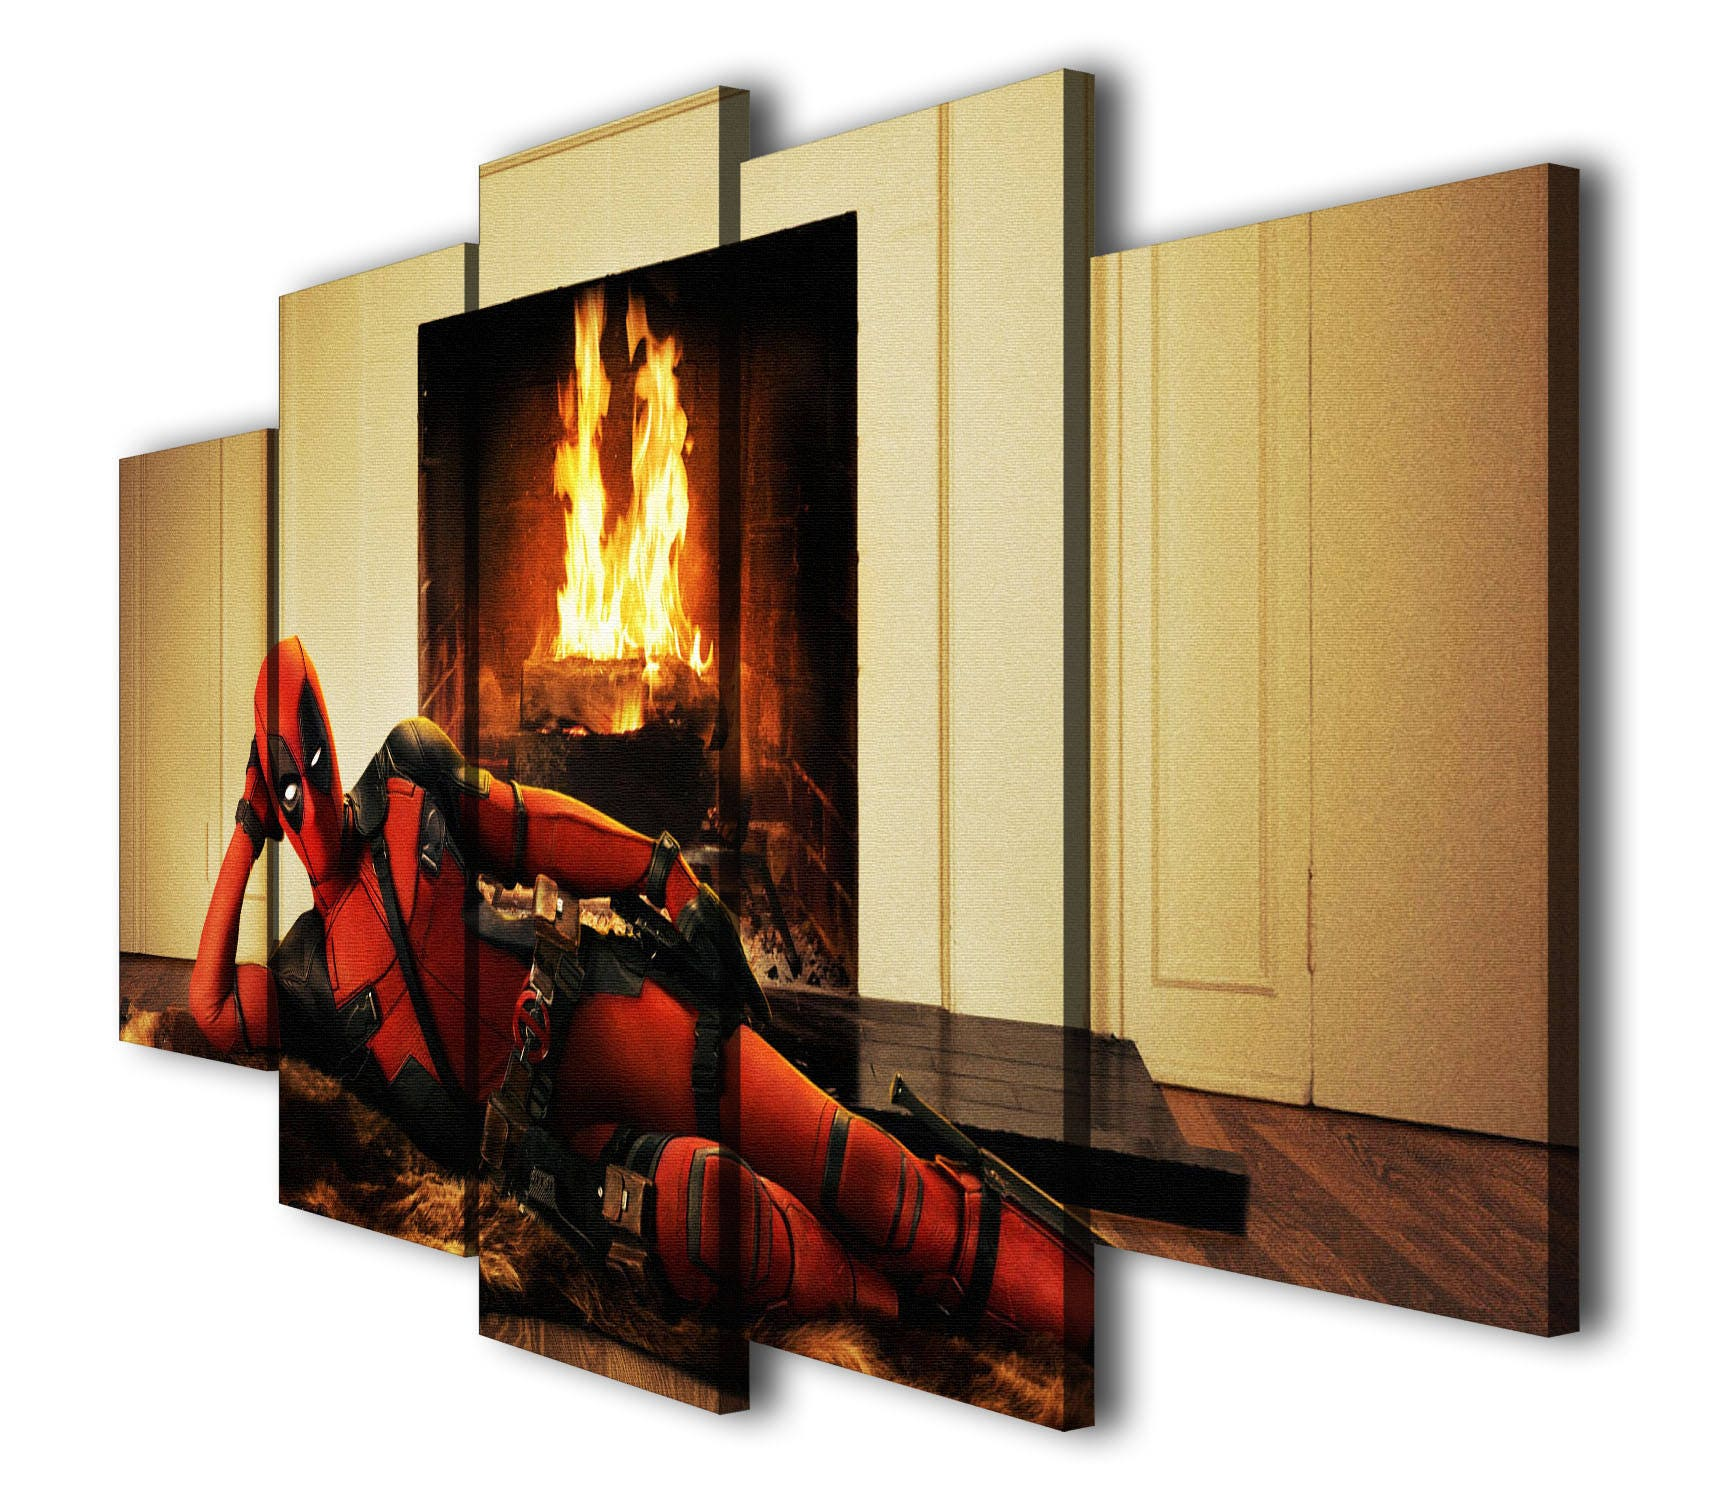 5 Panels Deadpool Painting Printed on Canvas Wall Art Picture